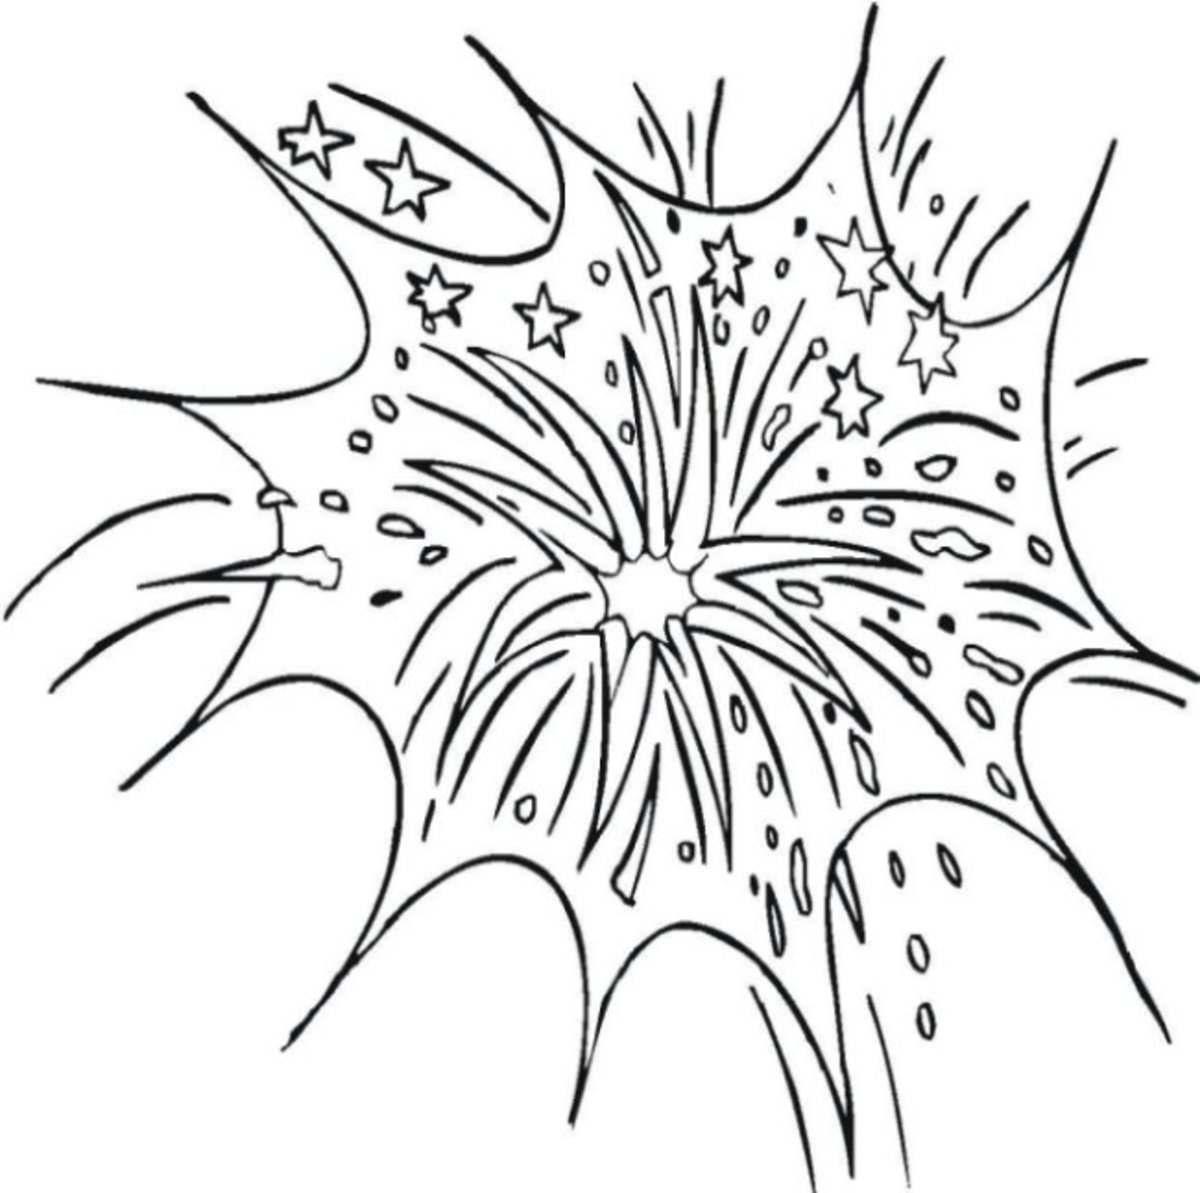 patriotic america 4thofjuly kids coloring pages and free